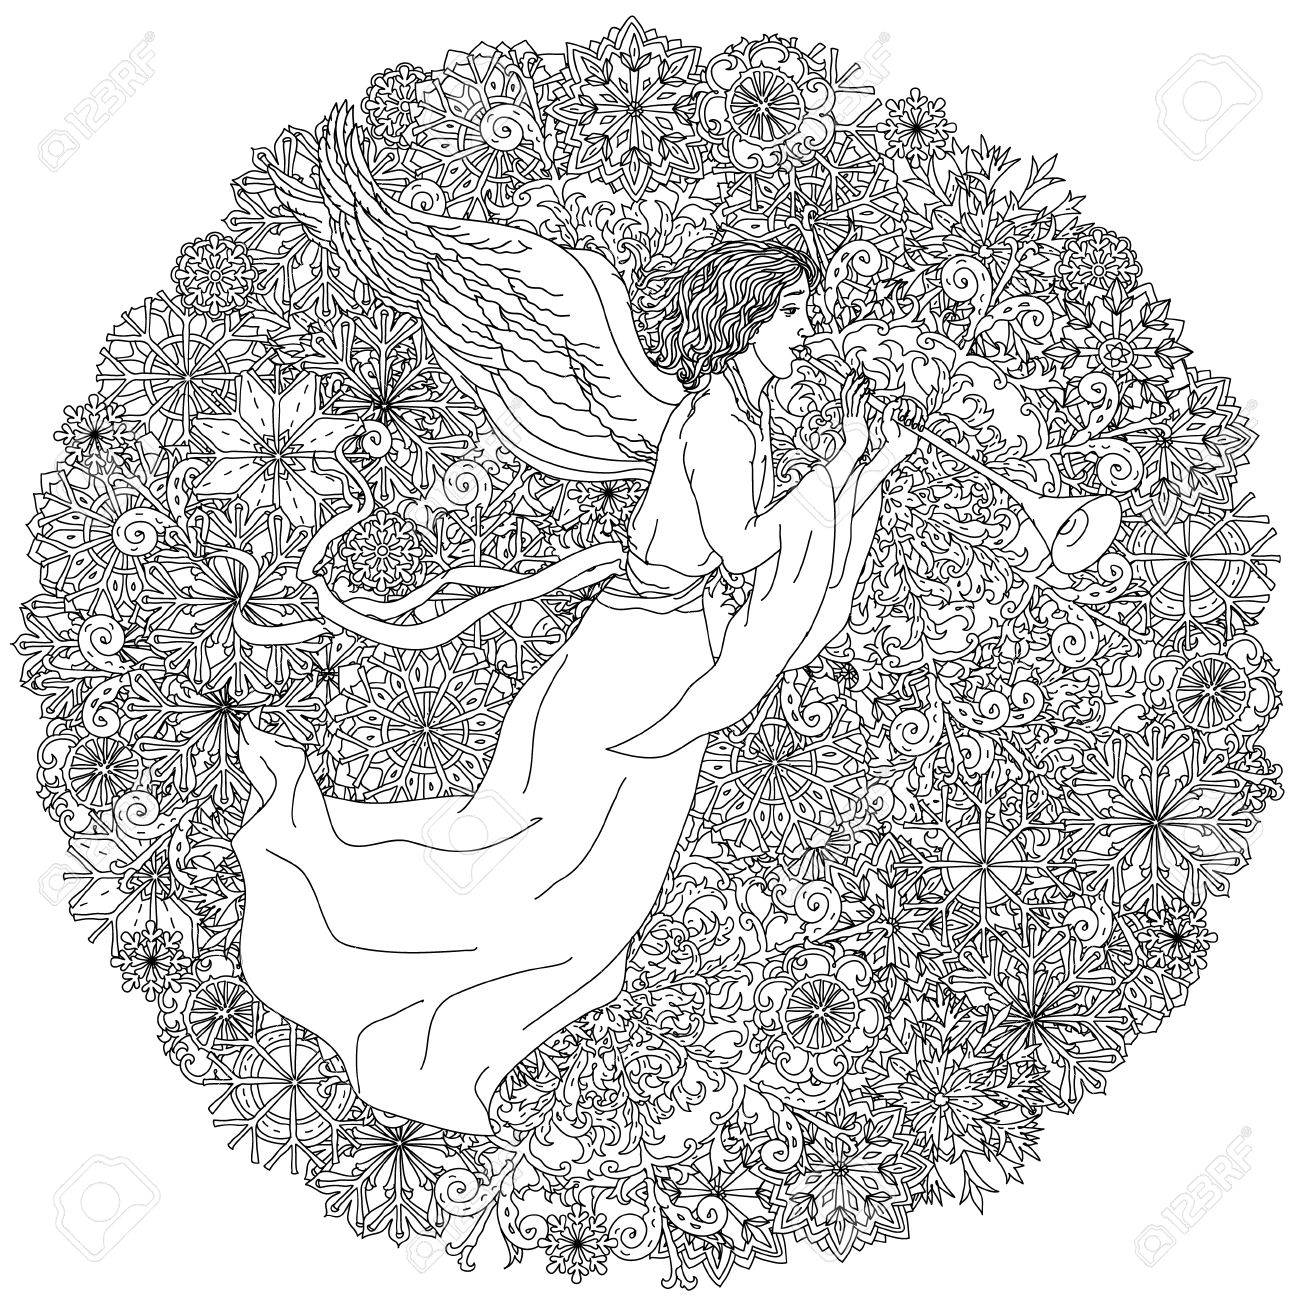 angel on christmas ornament of snowflakes black and white